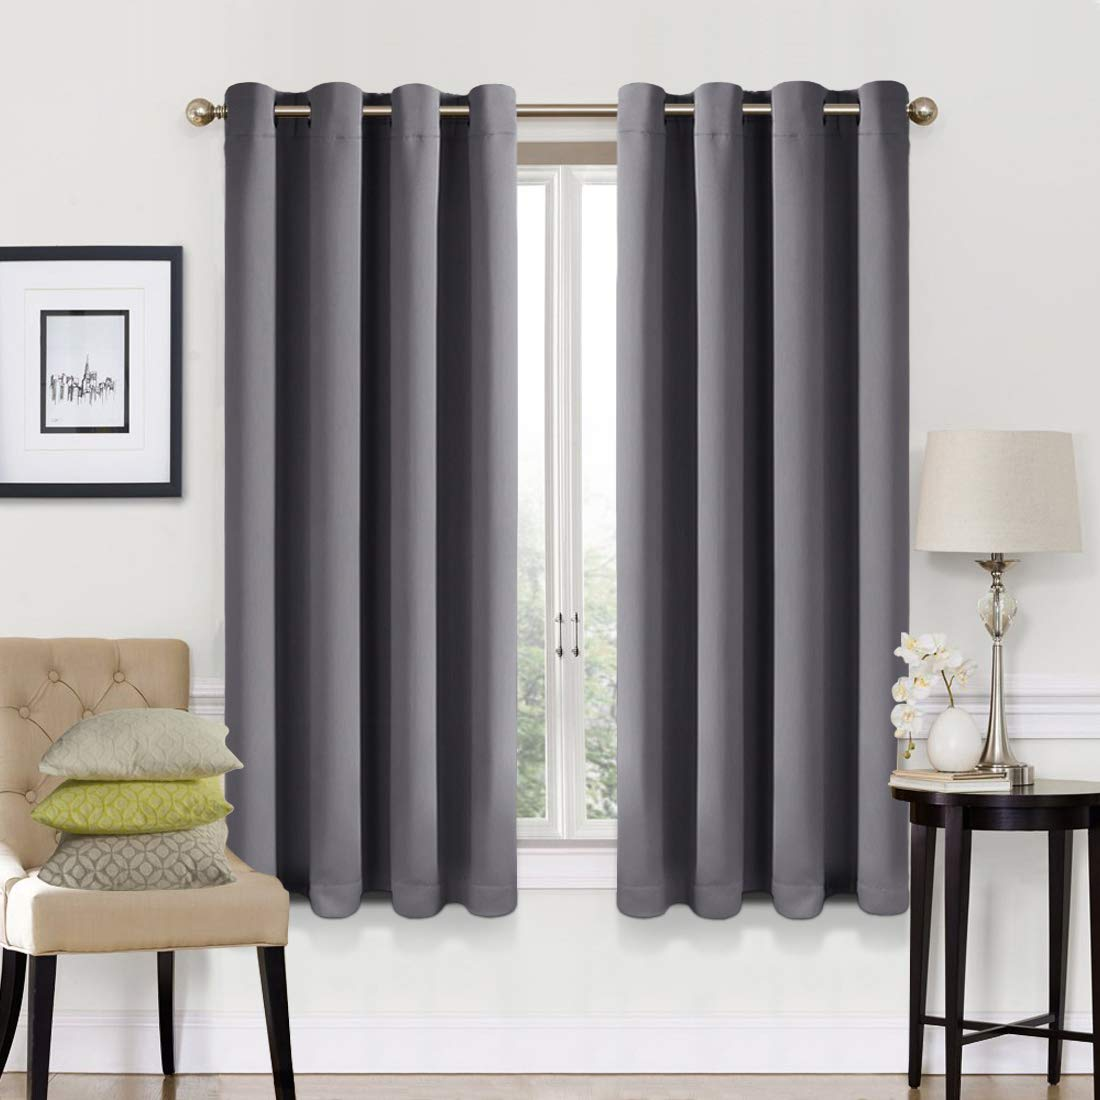 EASELAND 99% Blackout Curtains 2 Panels Set Room Darkening Drapes Thermal Insulated Solid Grommets Window Treatment Pair for Bedroom, Nursery, Living Room